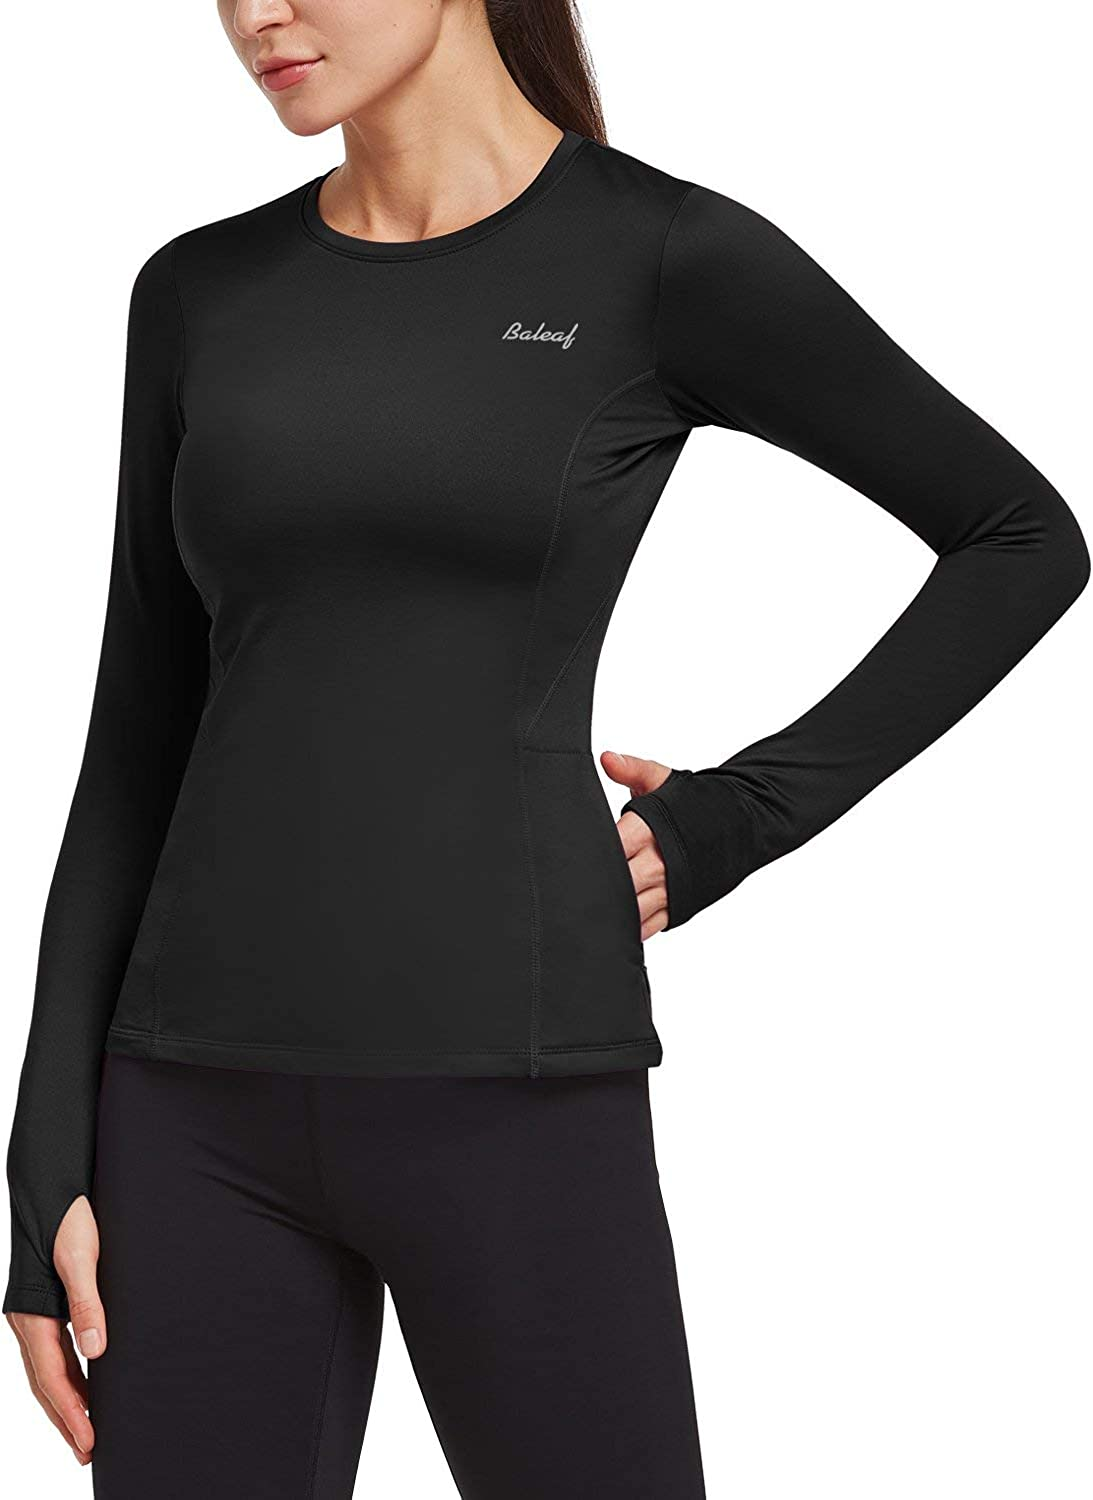 Women/'s Thermal Compression Base Layer 1//4 Zipper Mock Neck Fitness Jogging Top